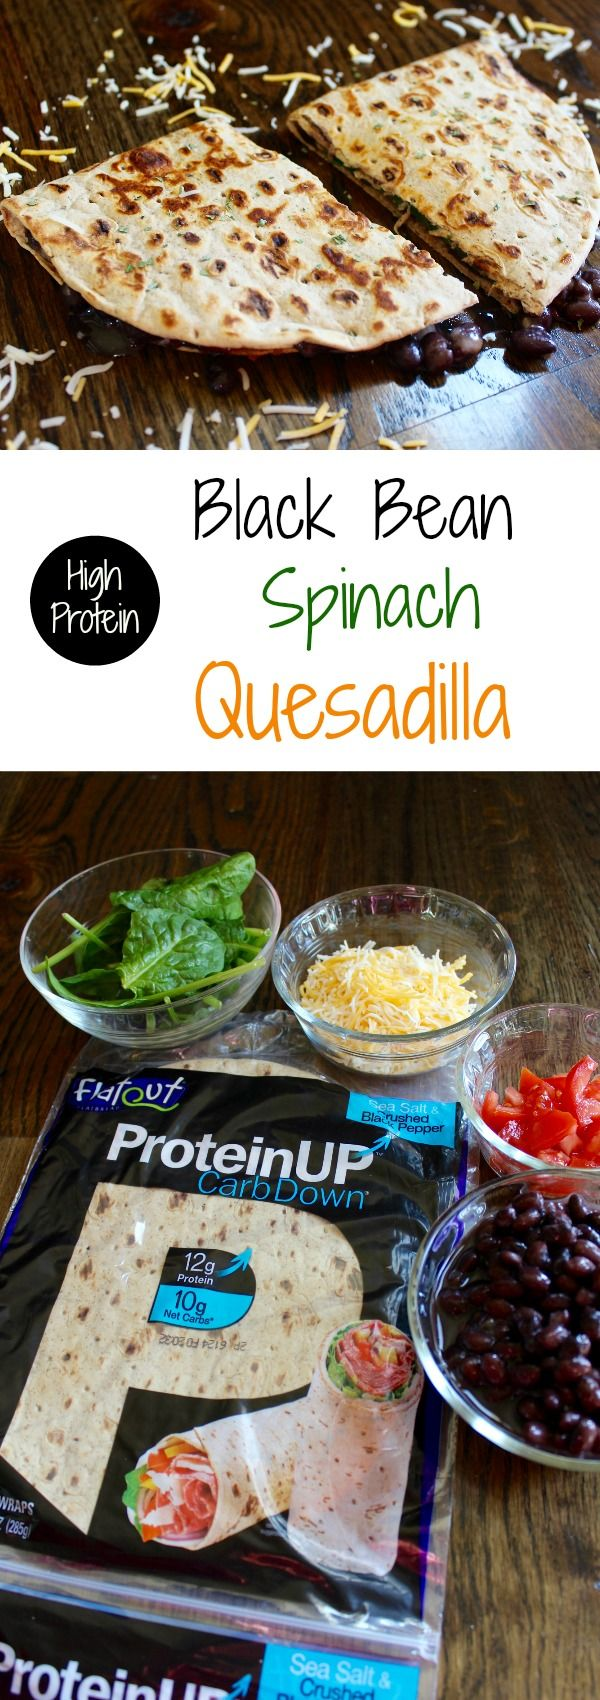 High Protein Black Bean Spinach Quesadilla - Mitzi Dulan, America's Nutrition Expert, Cooks and Dishes